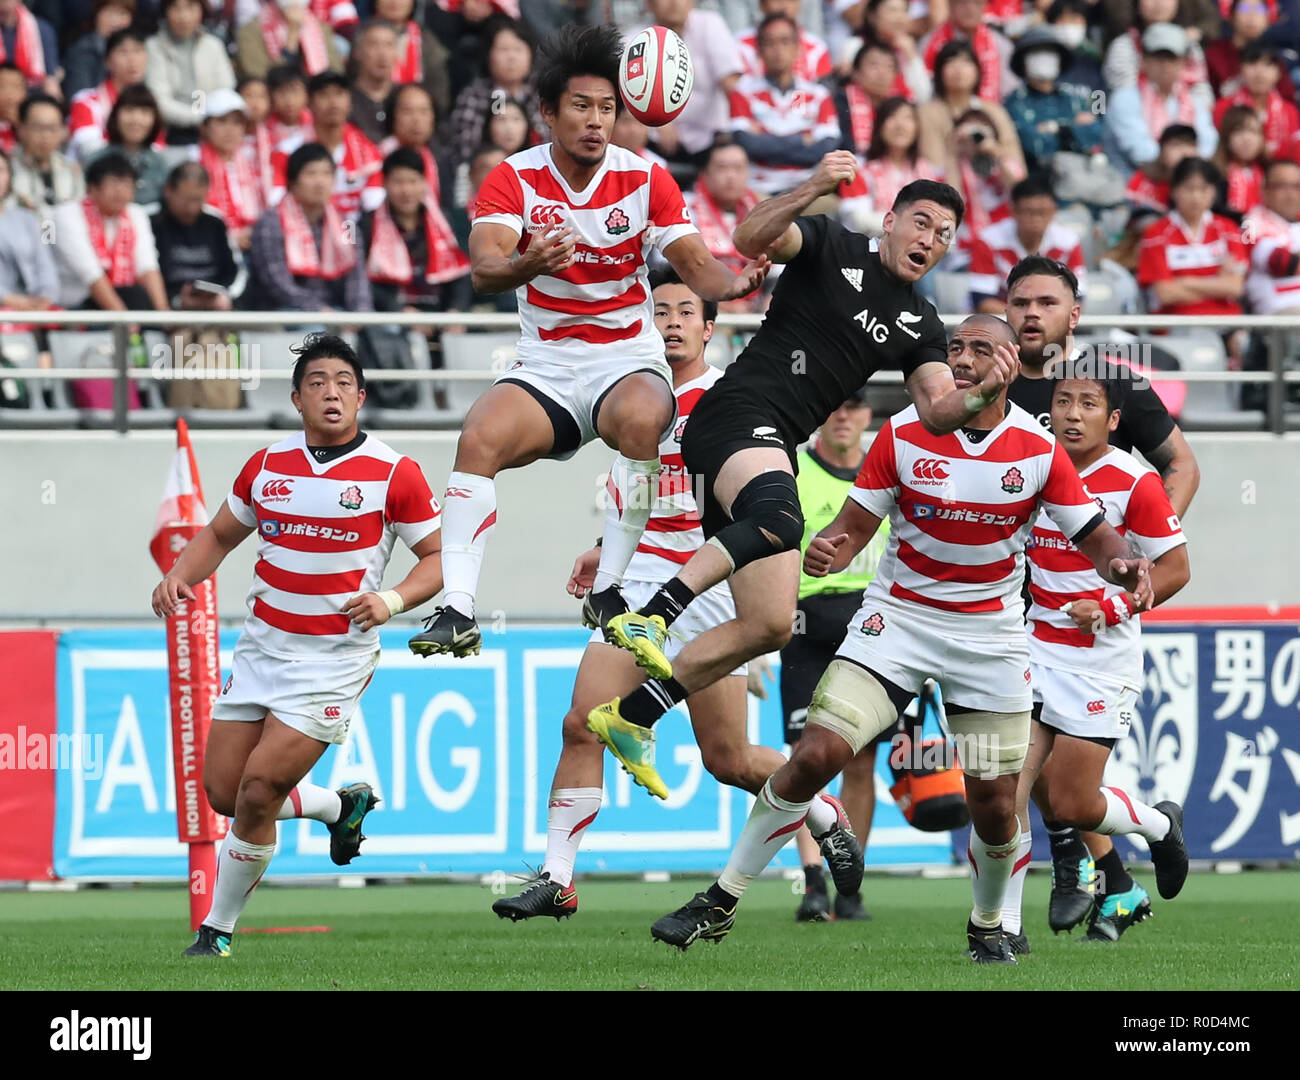 All Blacks Rugby Stock Photos & All Blacks Rugby Stock Images - Page